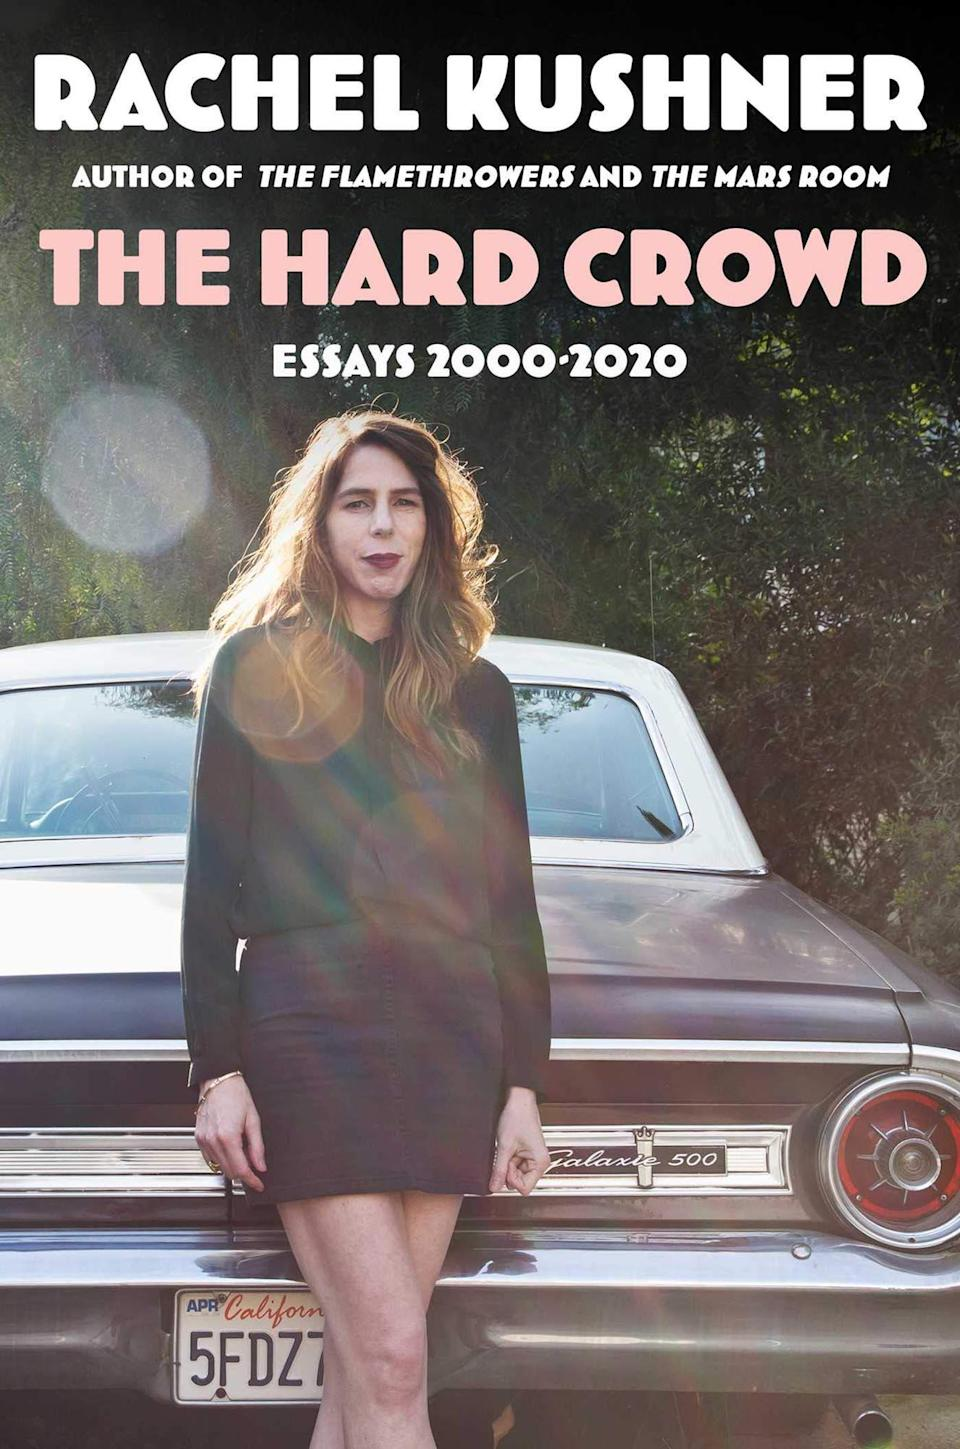 <p>The two-time National Book Award nominee turns her inspiringly acerbic tongue on topics including her youth in 1980s San Francisco; a motorcycle race in Baja, Mexico; Jeff Koons; and a plethora of cultural moments in this essay collection of new, expanded, and previously published work. (April 6)</p>